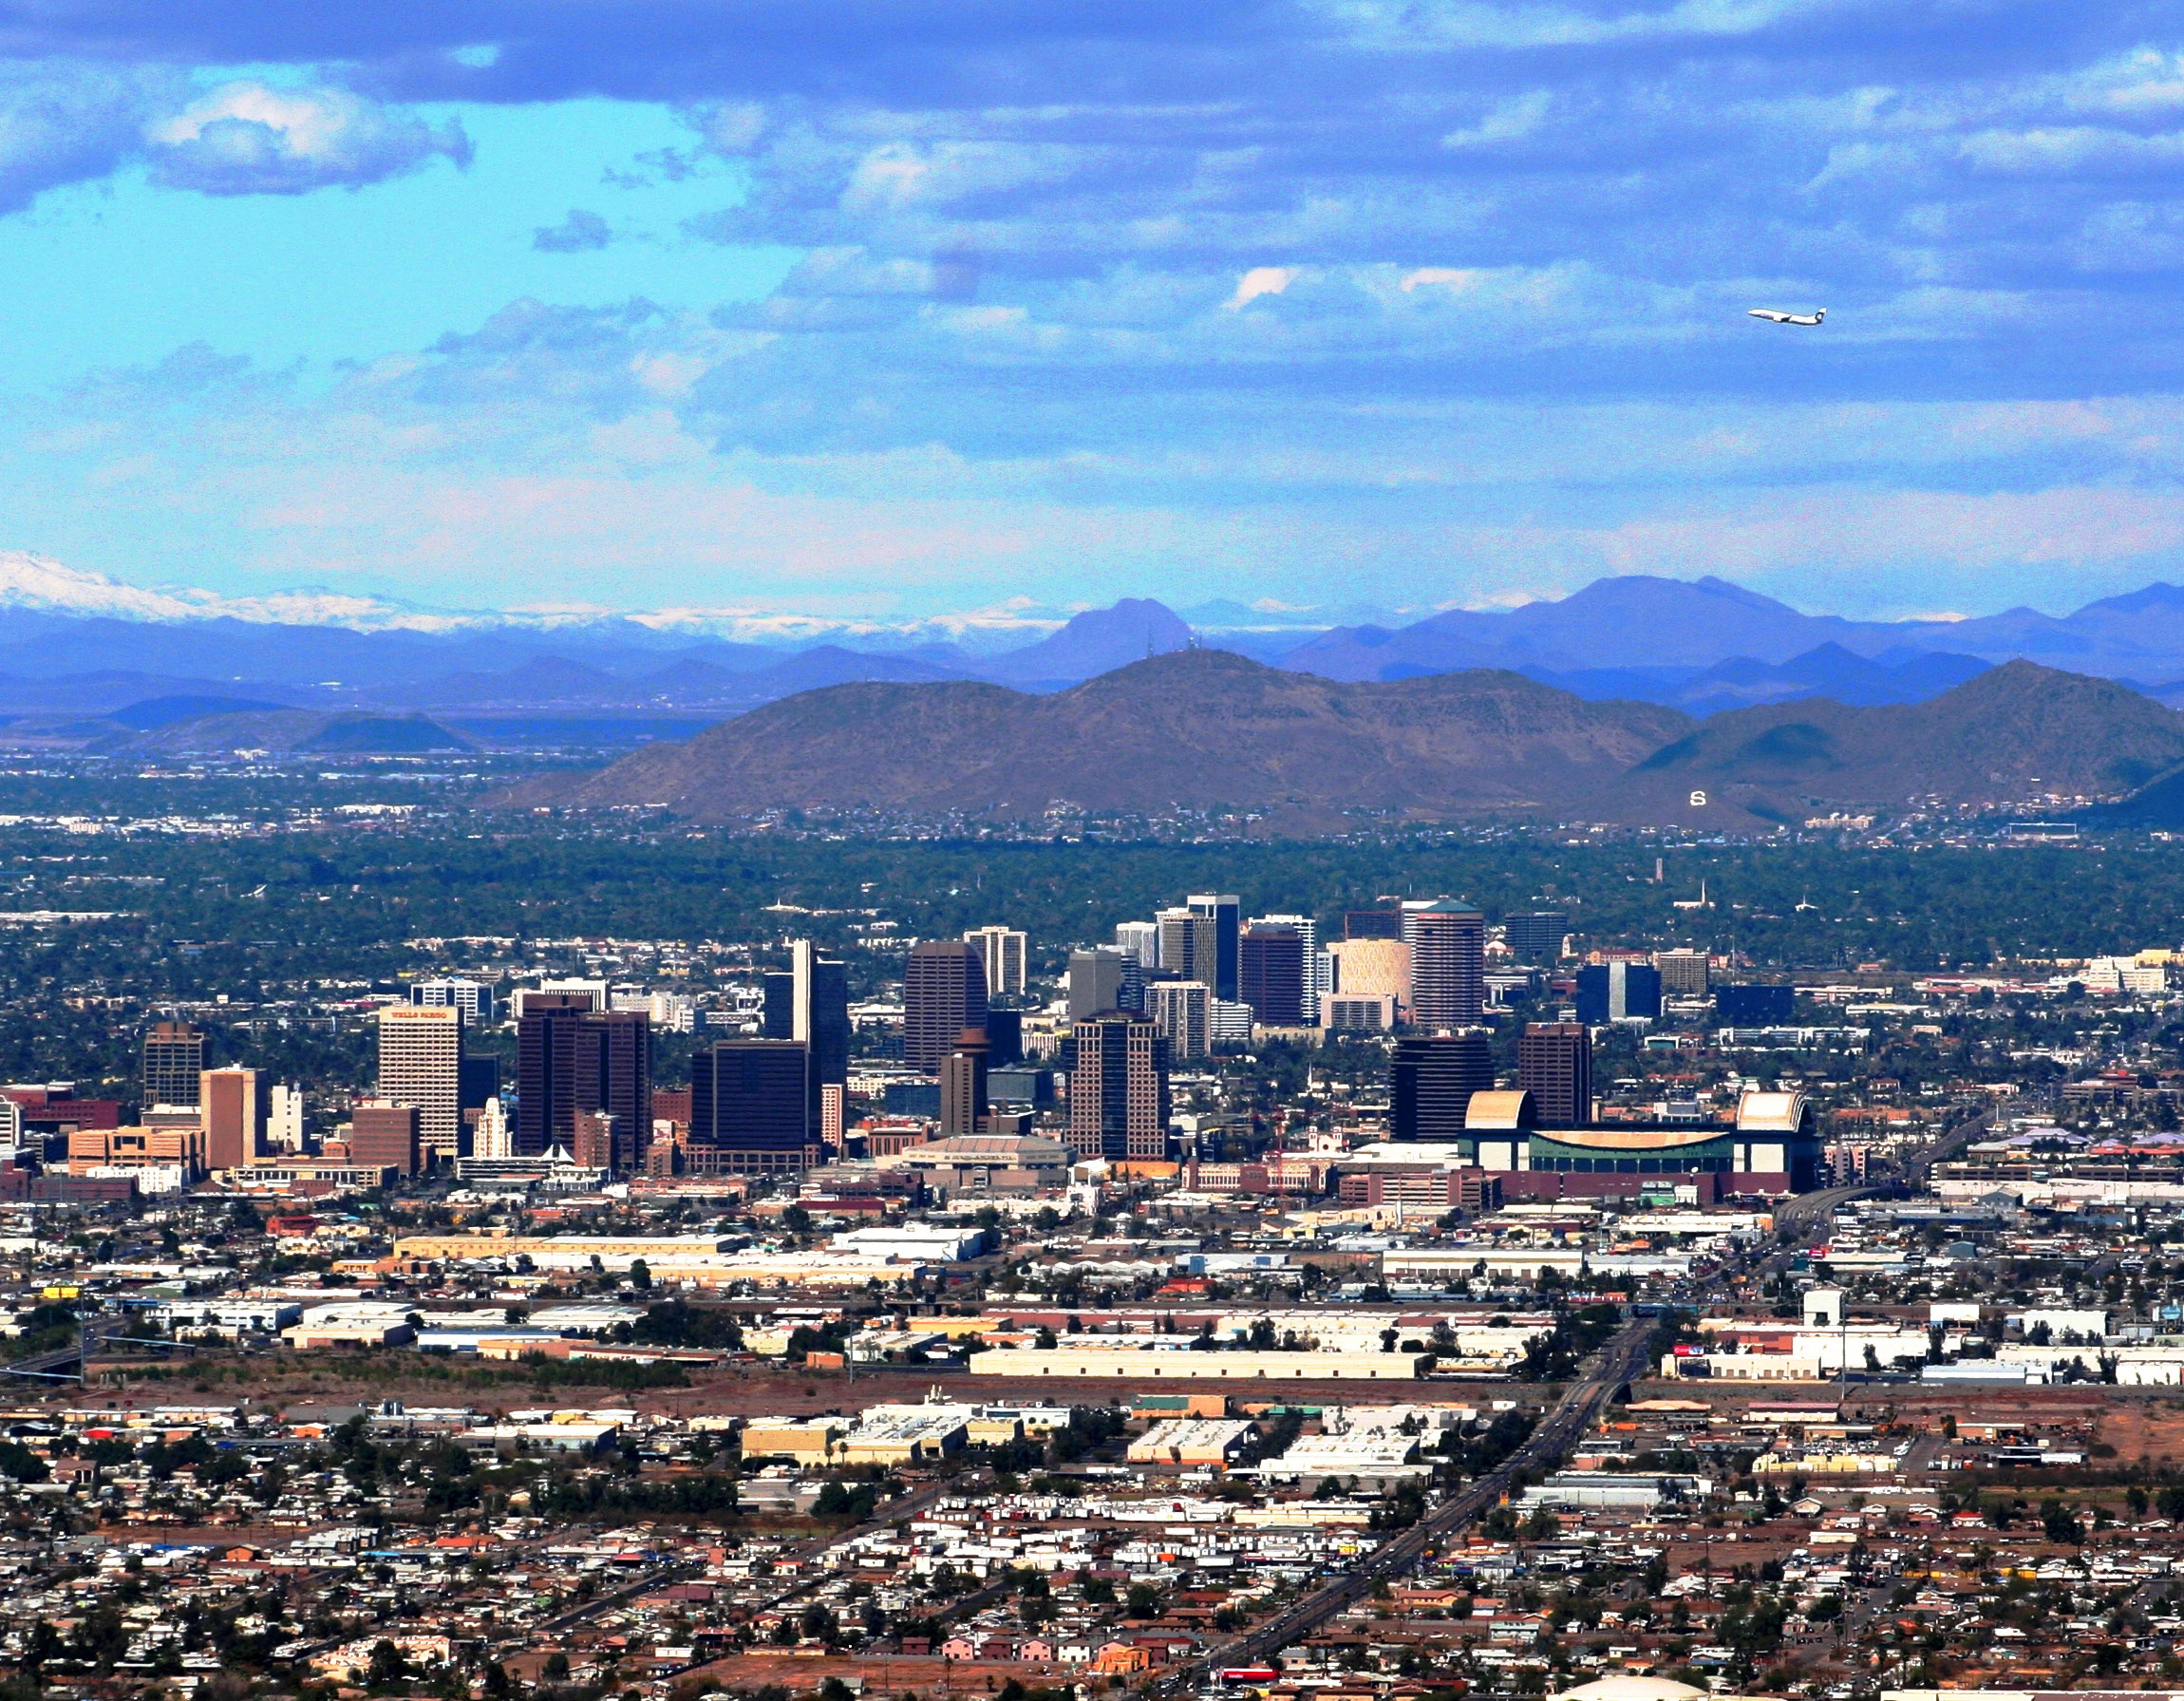 Phoenix - A Hot Spot for Rental Property Investment